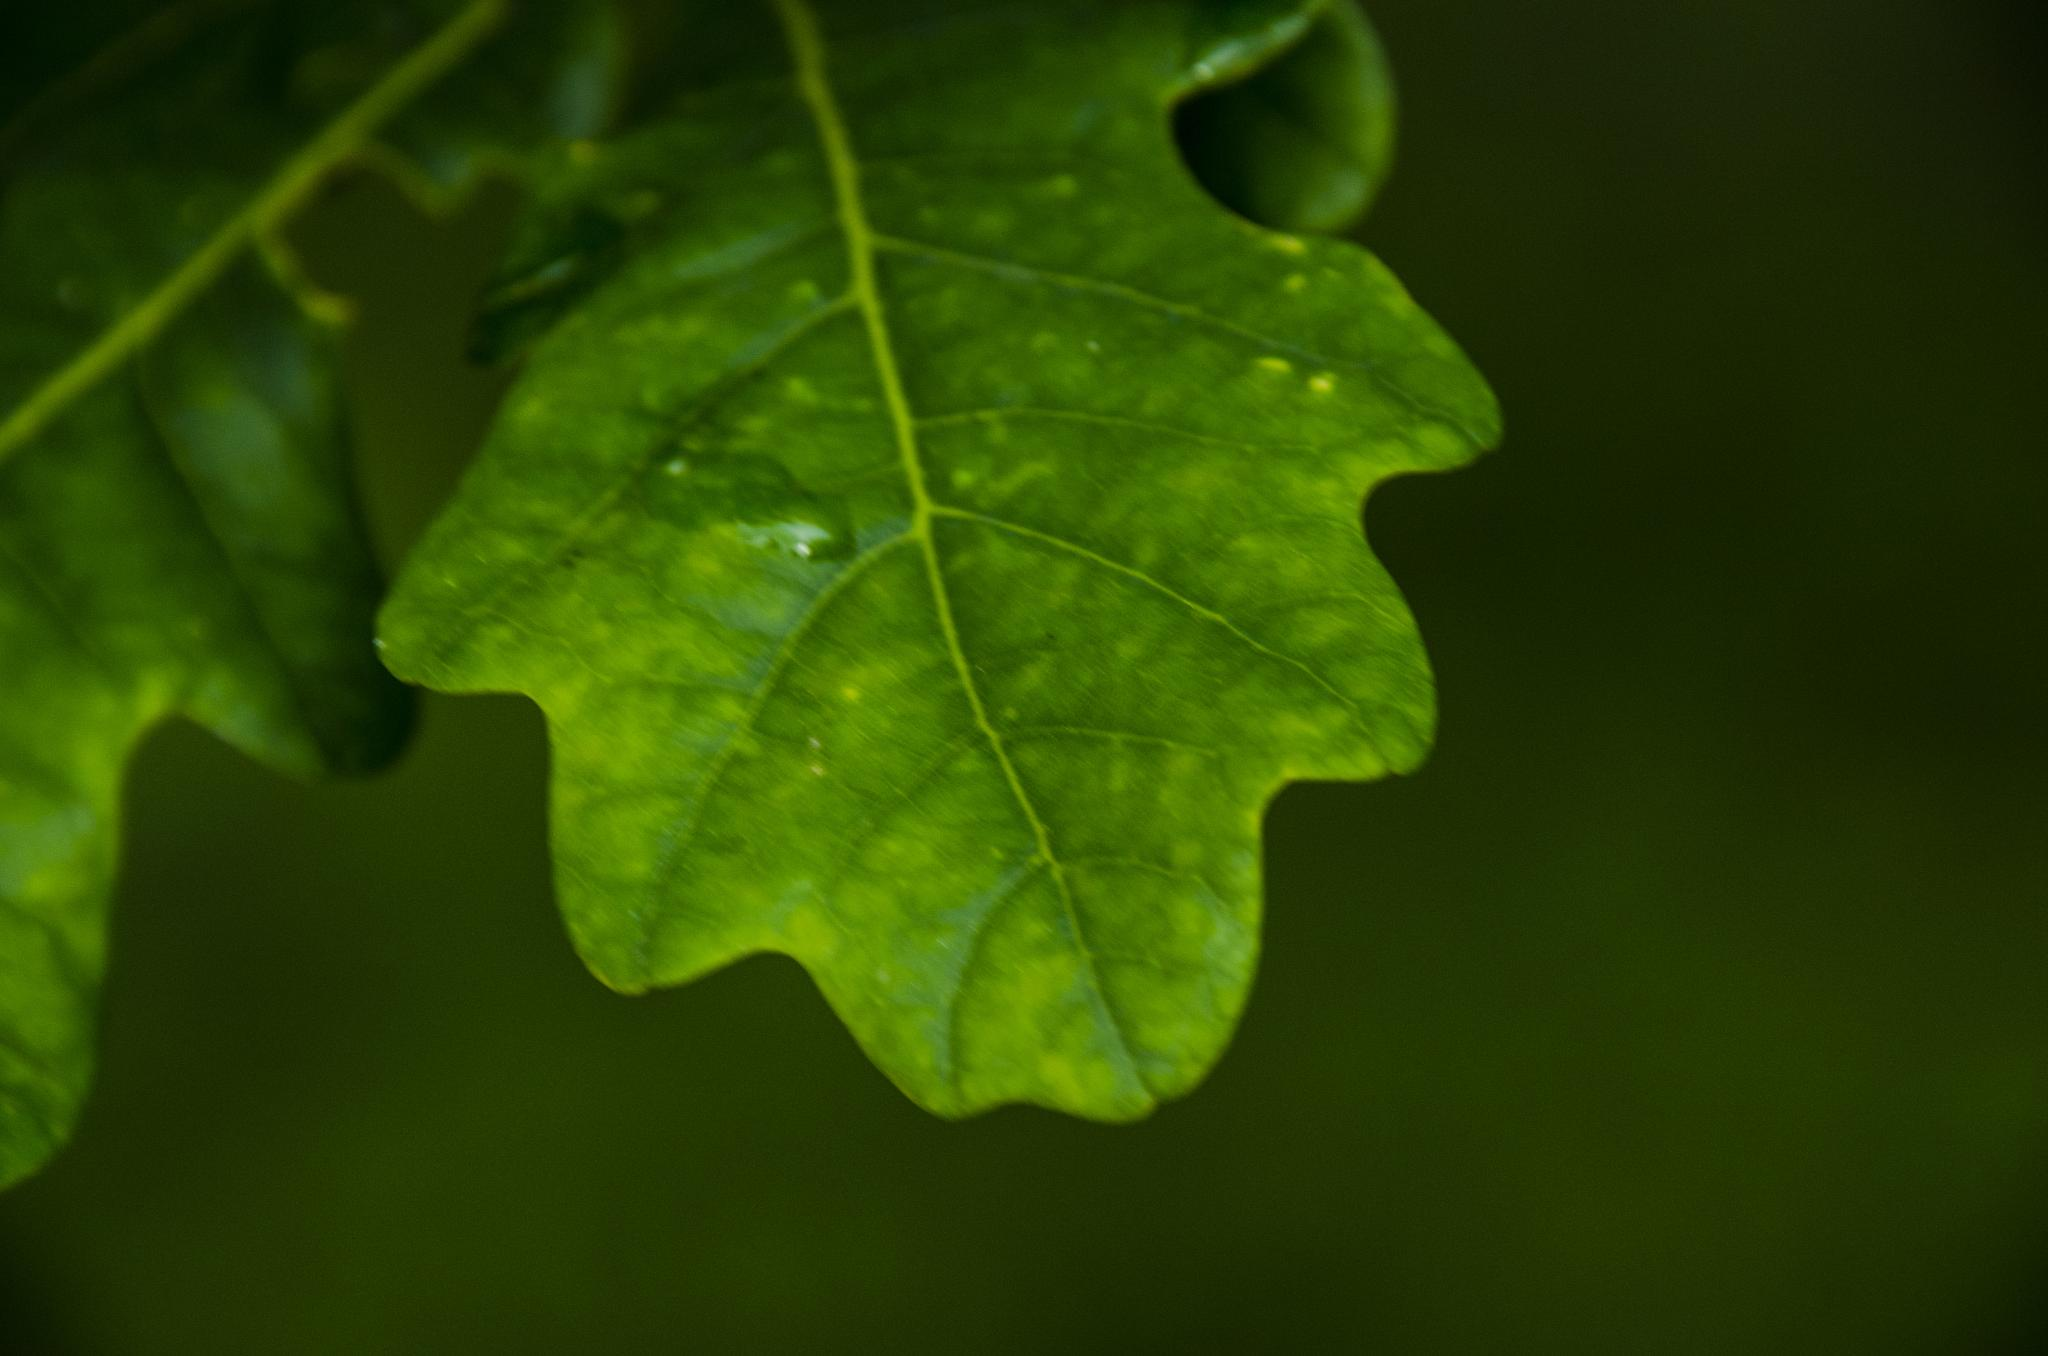 oak leaves with a water drop by Johnny Lythell